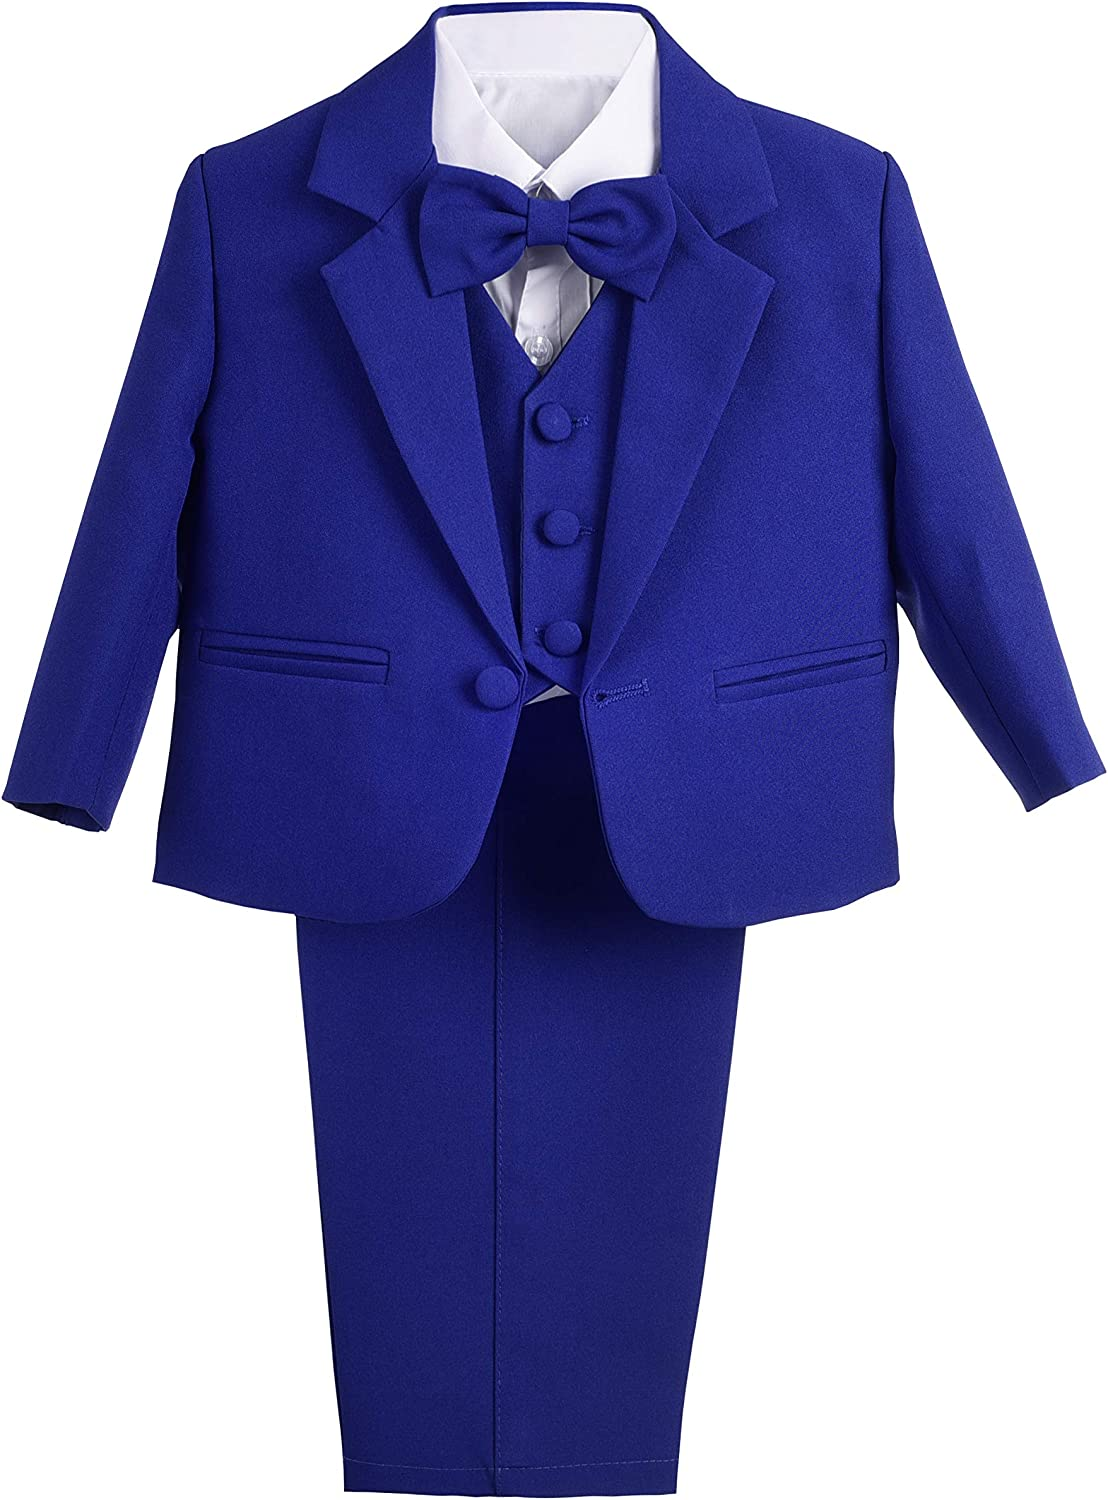 Lito Angels Baby Boys' Formal Tuxedo Suits Wedding Christening Outfits No Tail 5 Piece Set 022